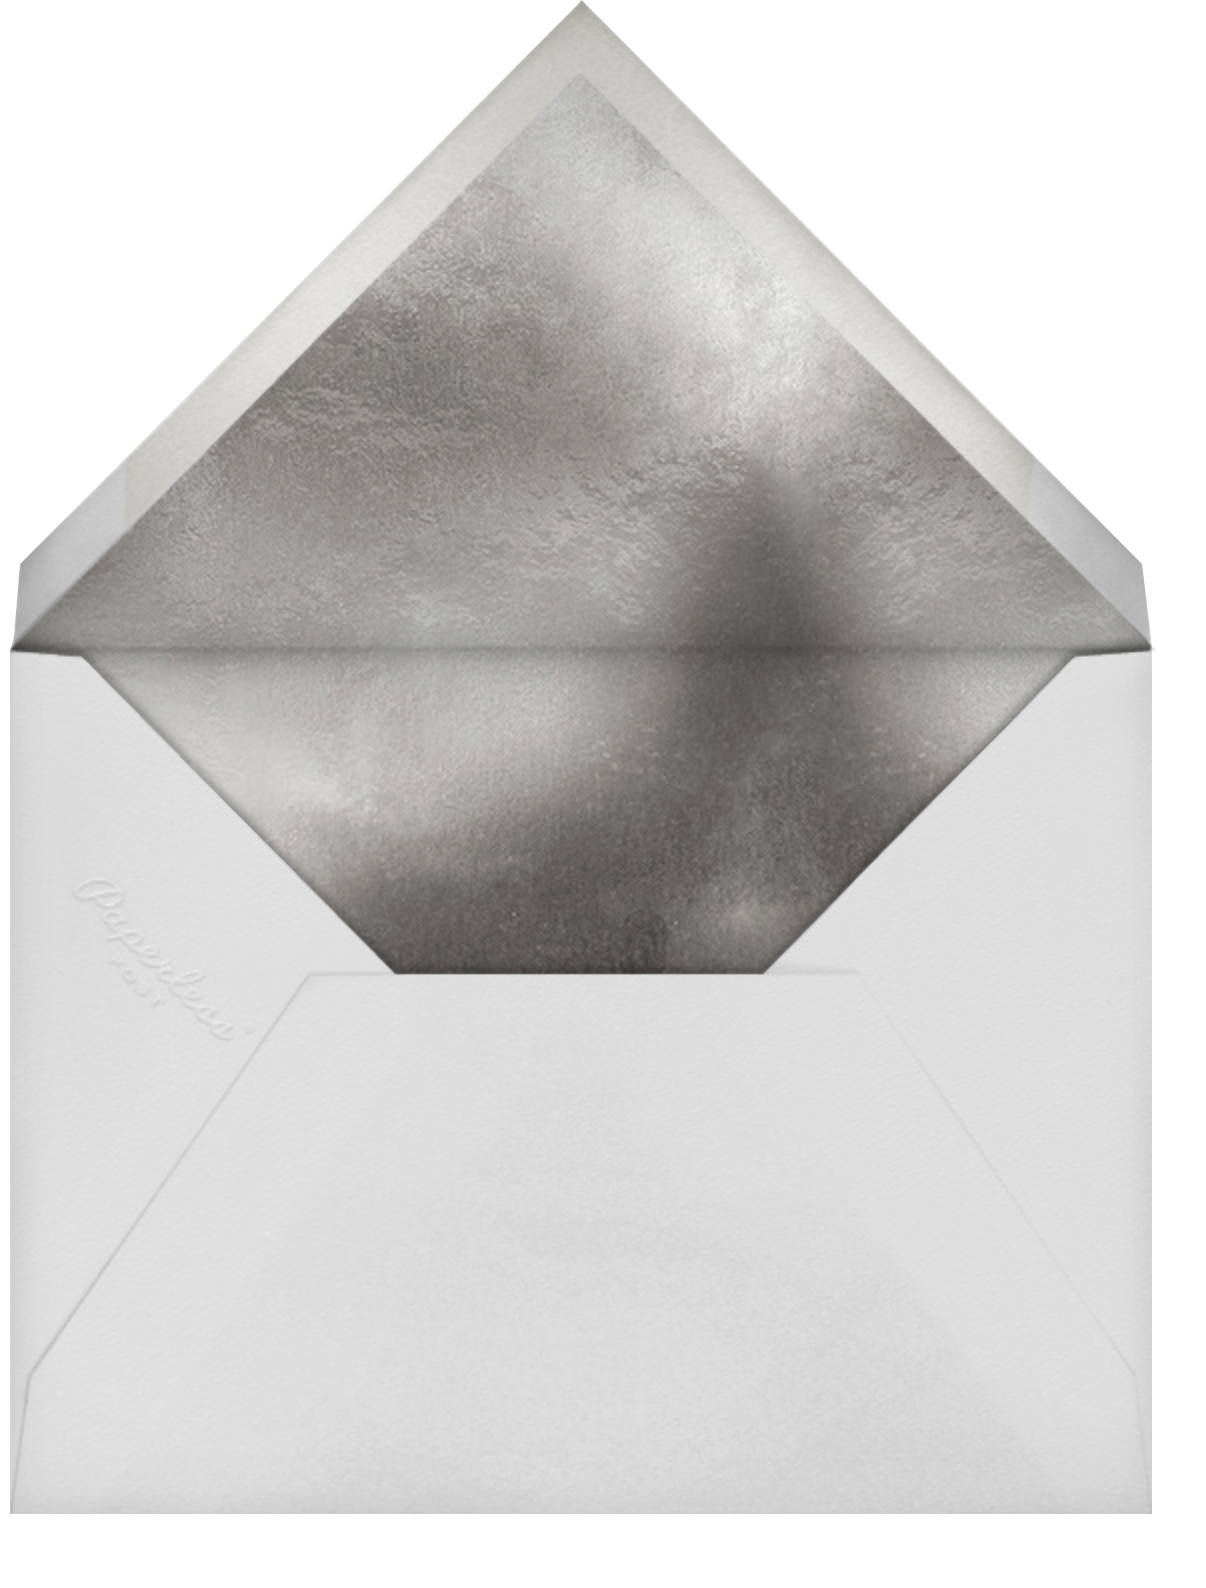 Snowflake Confetti - White - Paperless Post - Company holiday party - envelope back